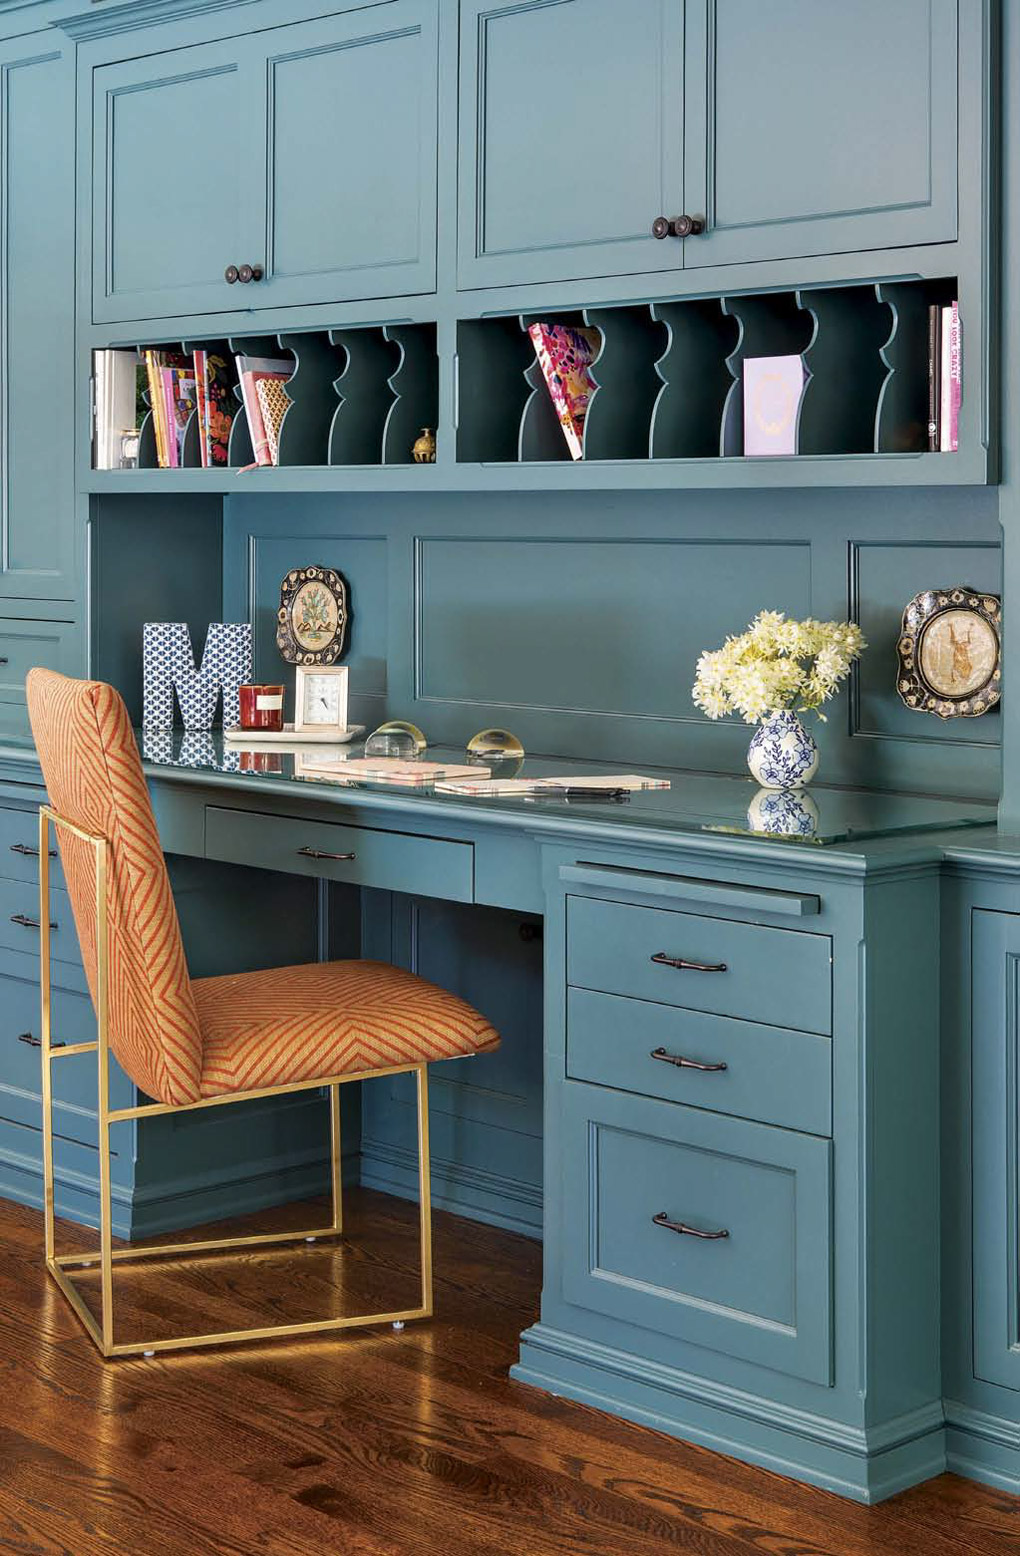 Custom made built-in desk and wrapping station in a bold shade of aqua.